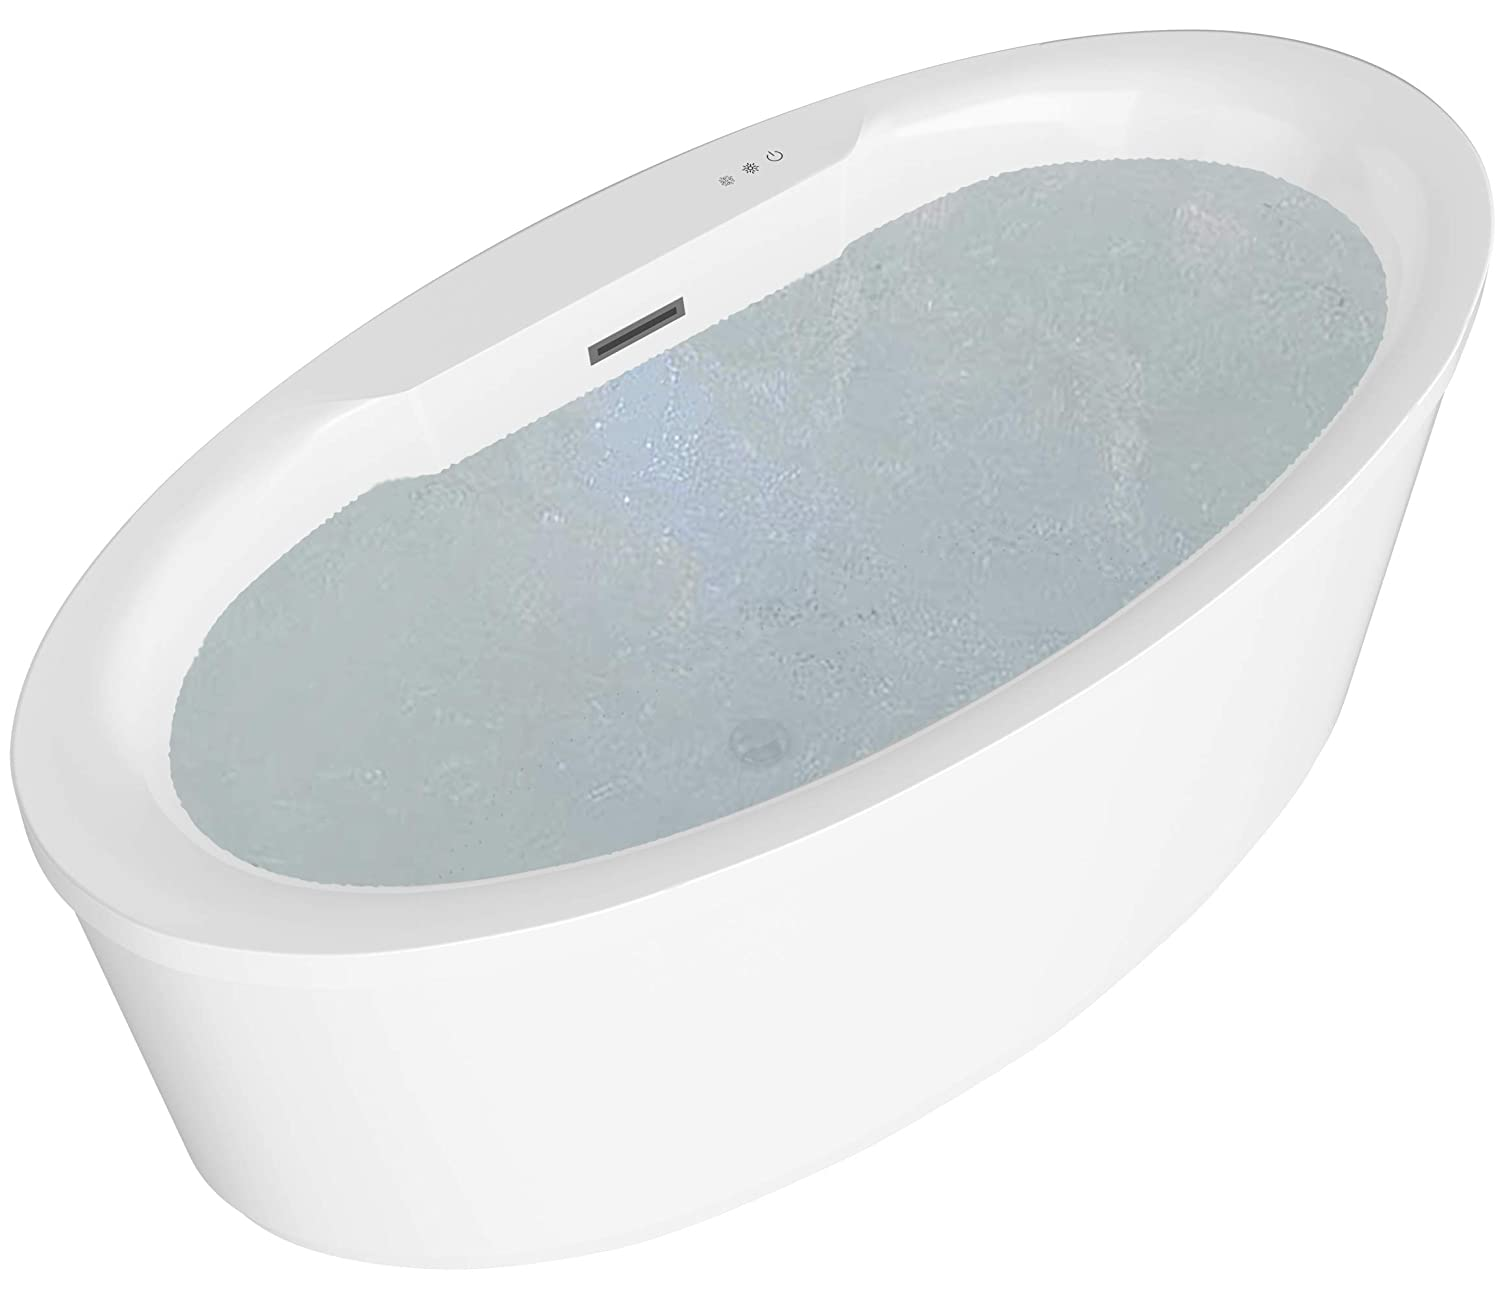 ANZZI Jarvis Whirlpool Air Jetted Acrylic Freestanding Bathtub in White Over 200 Aero-Therapeutic Bubble Massage Jets Socking Tub with Light Up Control Pad and Four Colored Bath Lights FT-AZ077